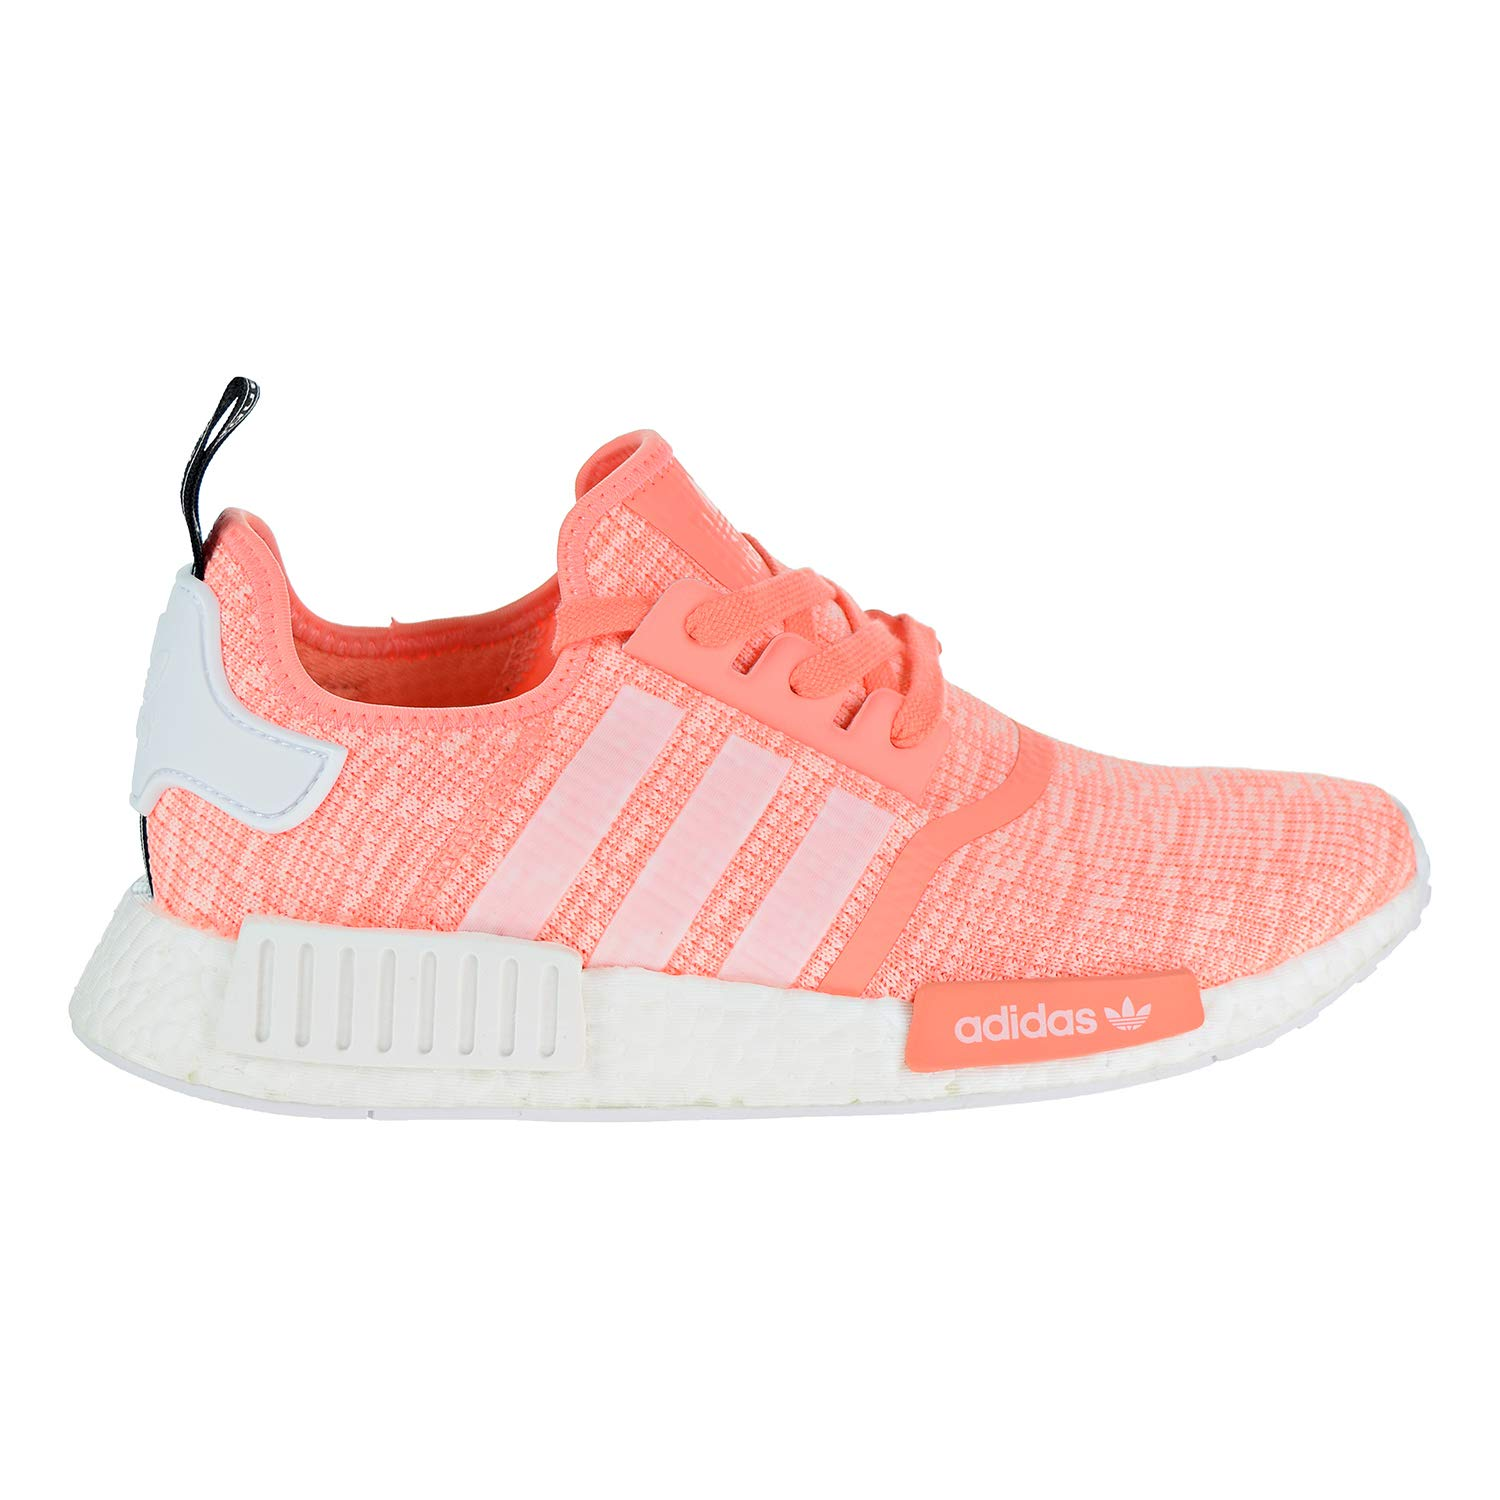 adidas NMD Sunglo, R1 W PK PK 363, Baskets Mixte Adulte Mixte Sunglo, Wwht, Hzcor aaaa6b2 - automaticcouplings.space